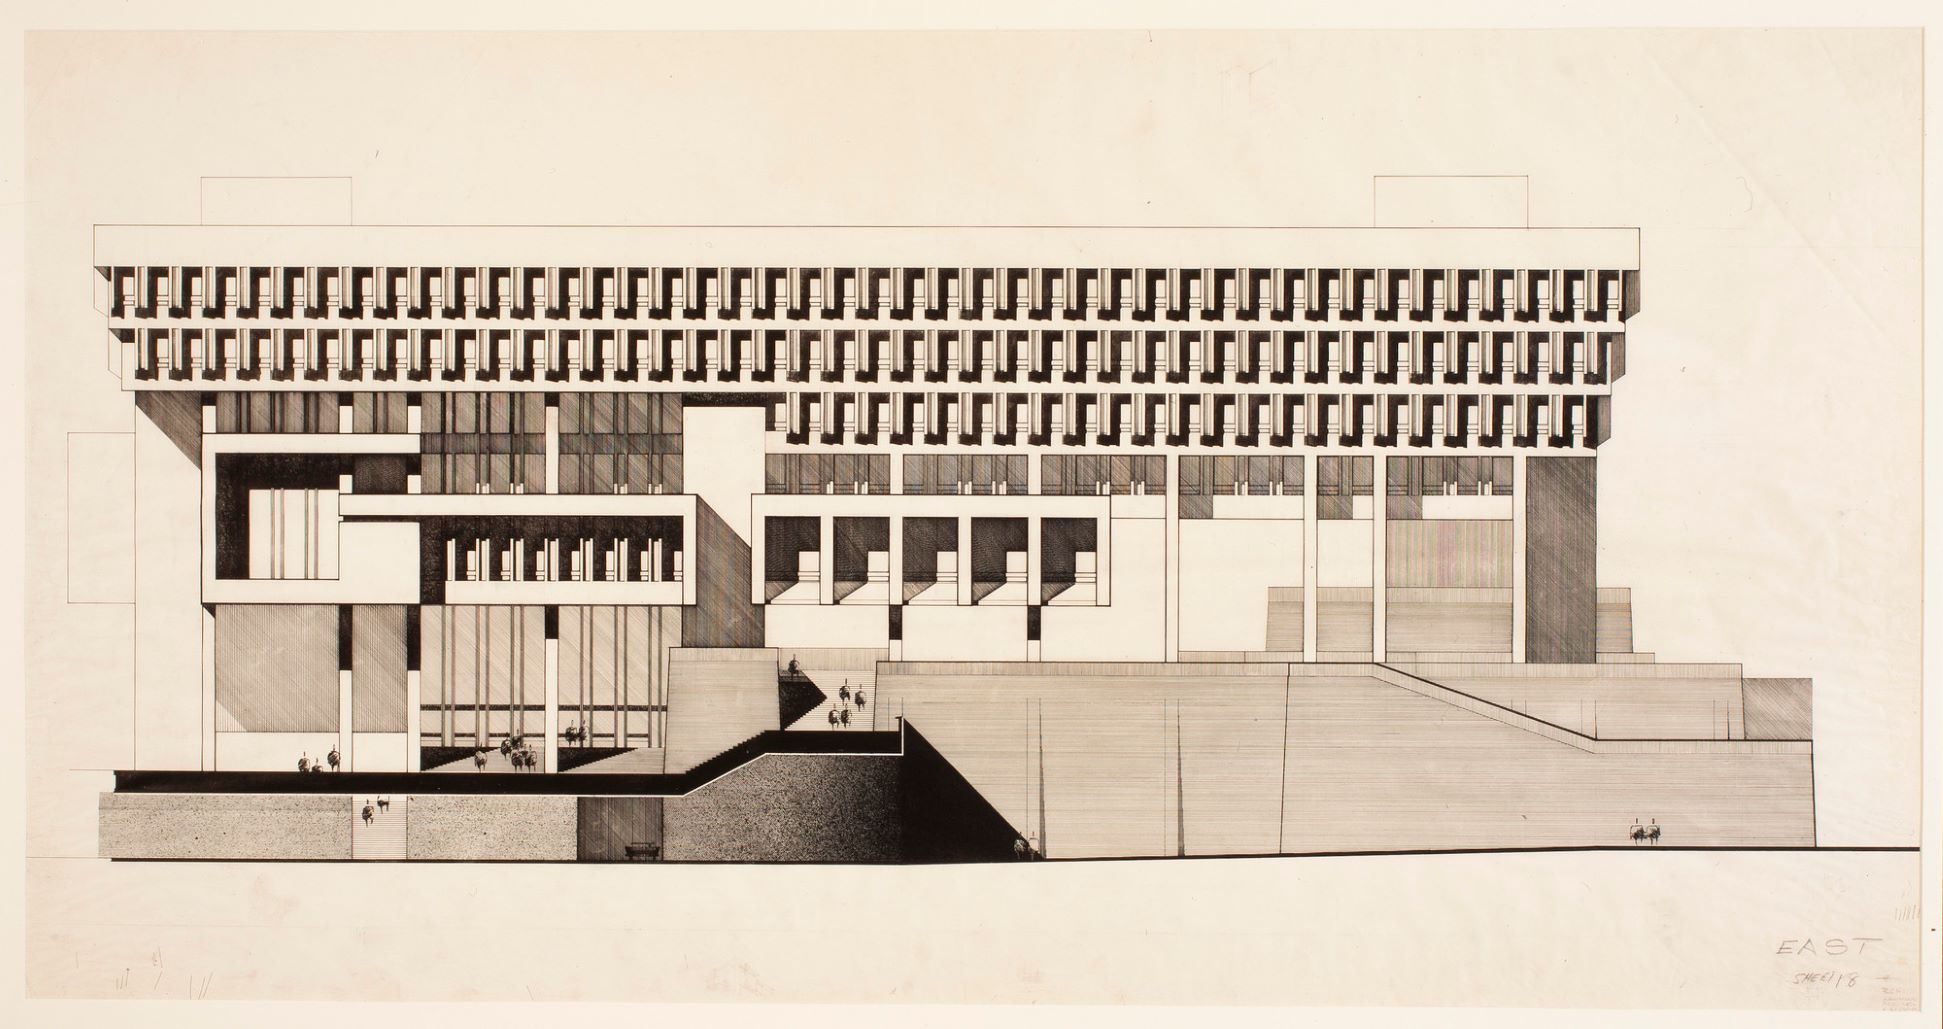 Boston City Hall architectural drawing exterior